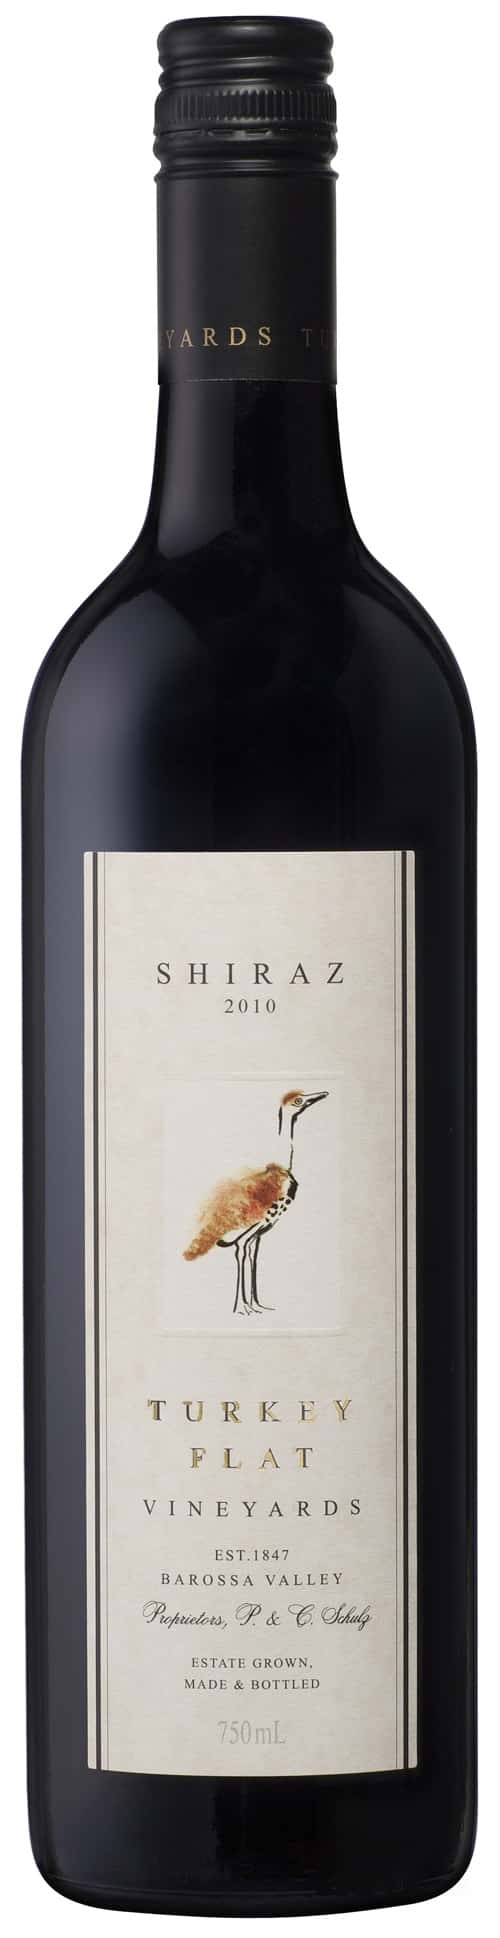 Turkey Flat Shiraz 11 2011 75cl